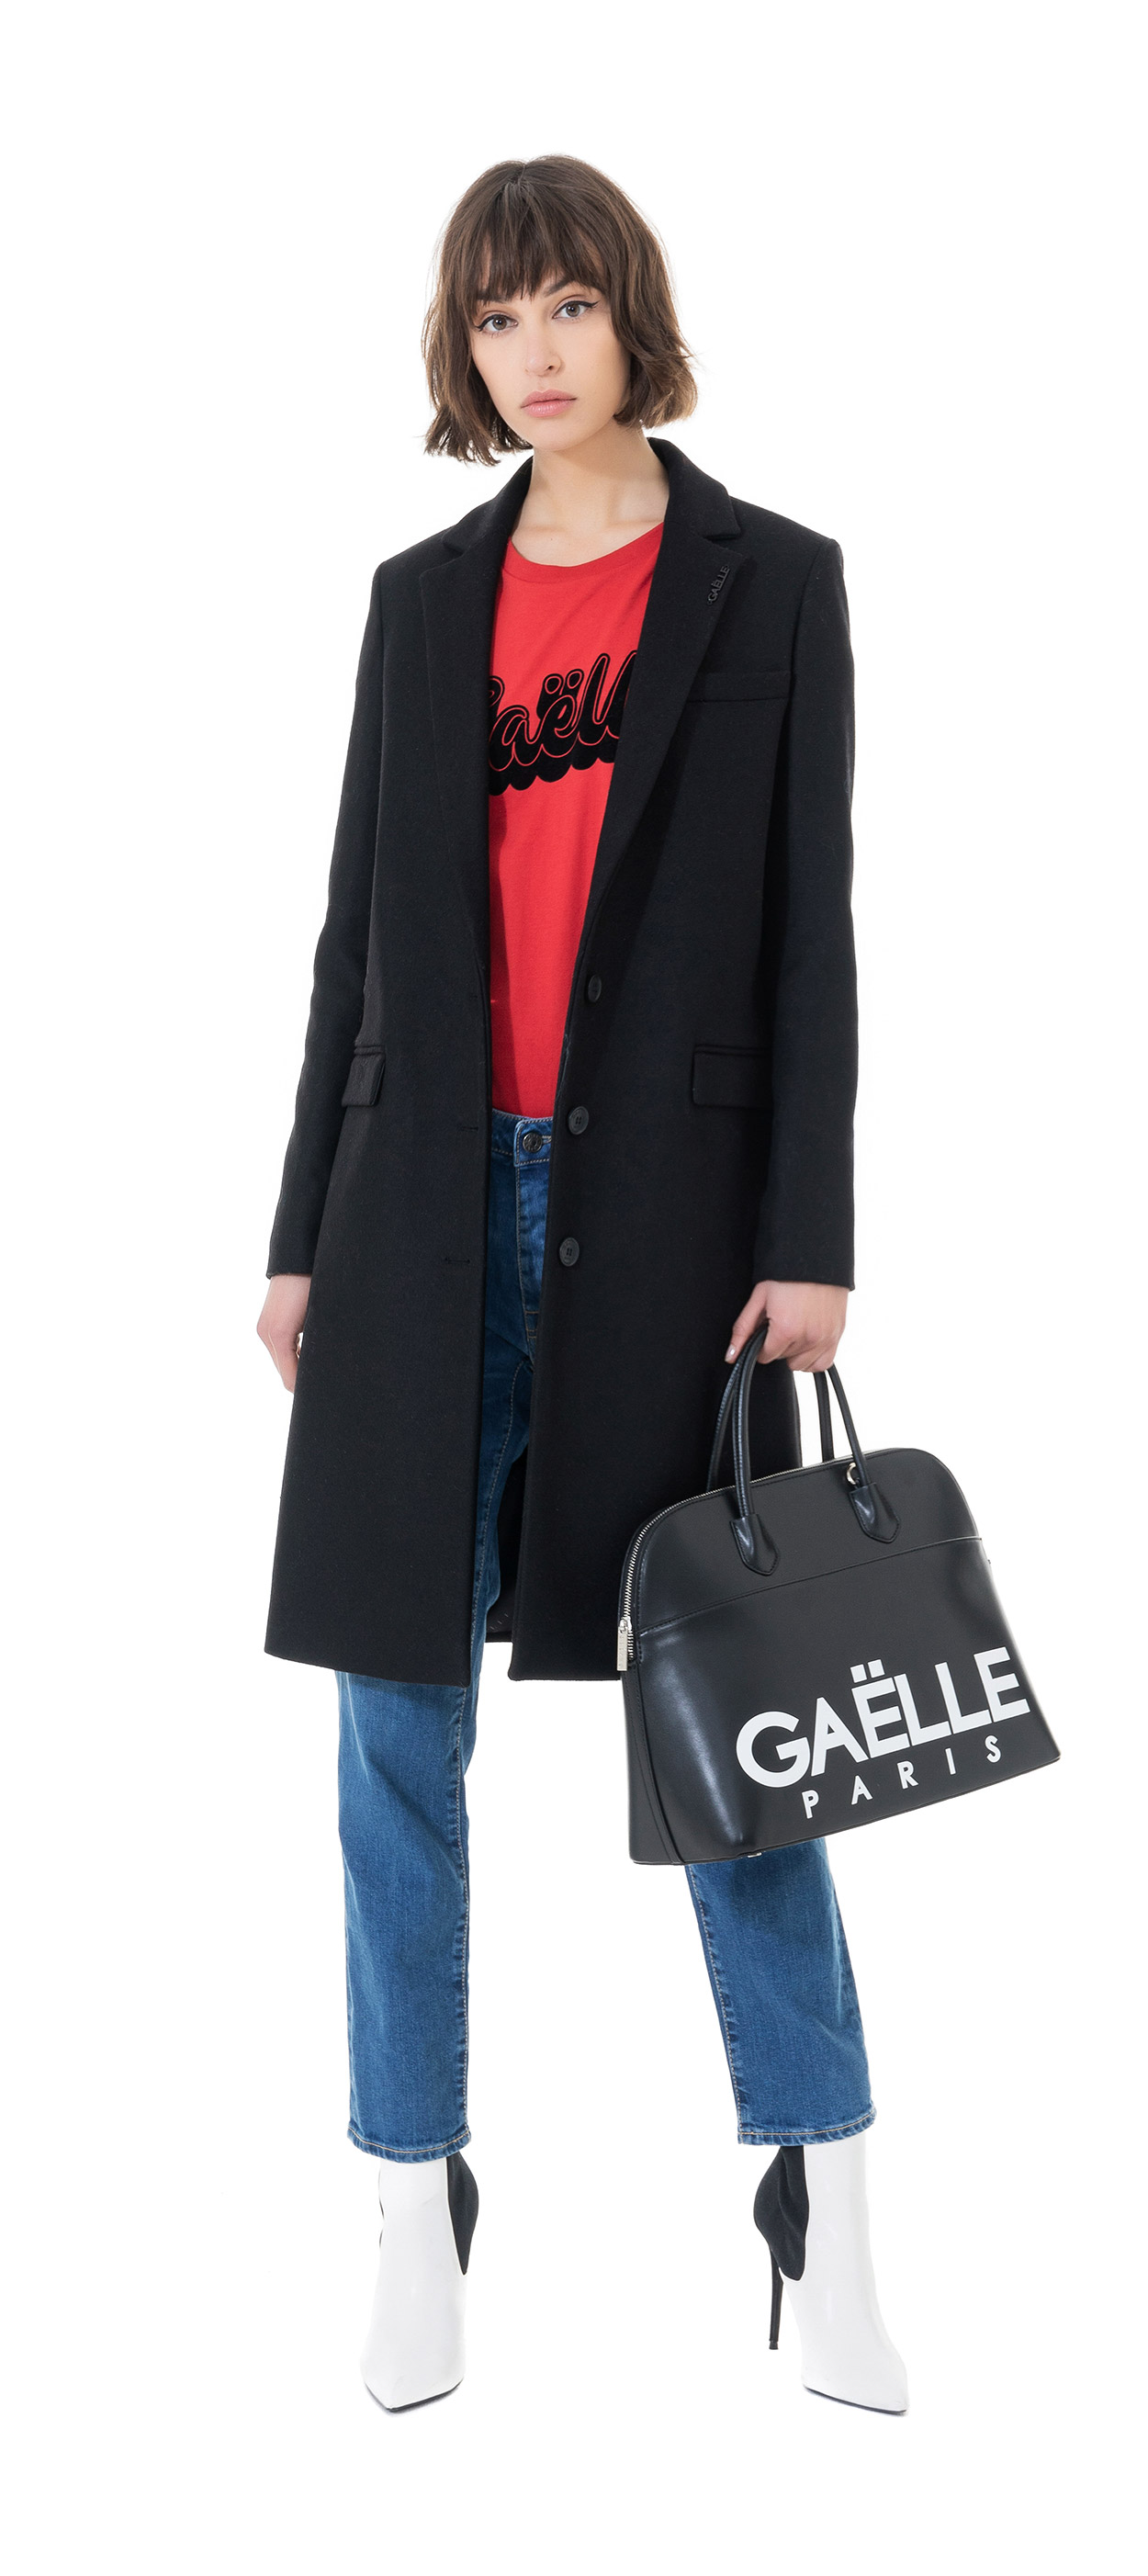 CAPPOTTO - GBD4931 - GAELLE PARIS